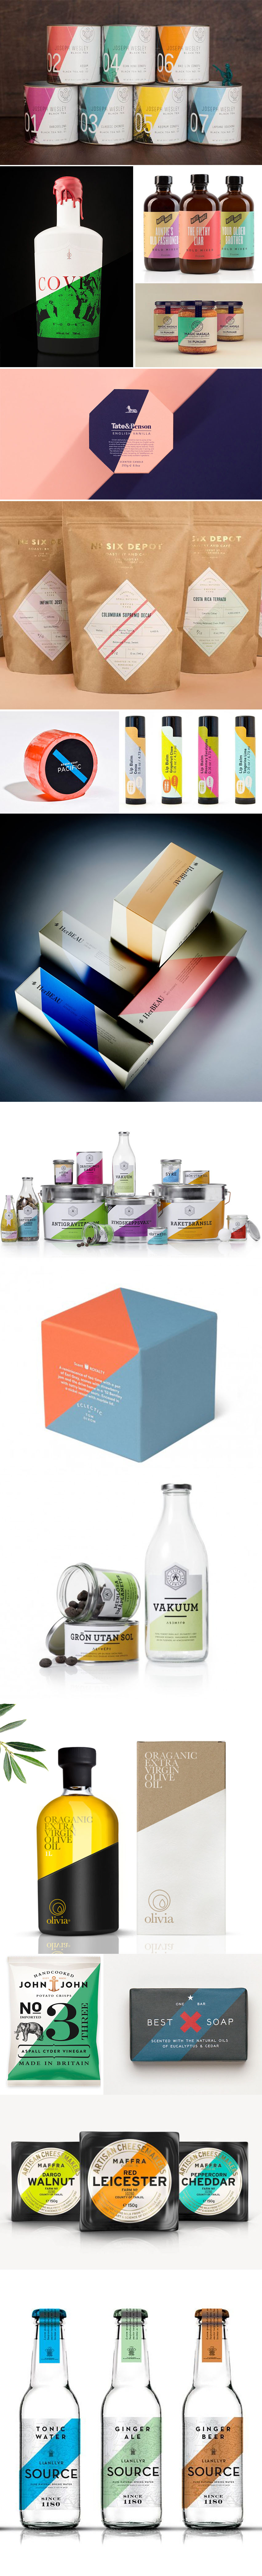 Theme: diagonal packaging